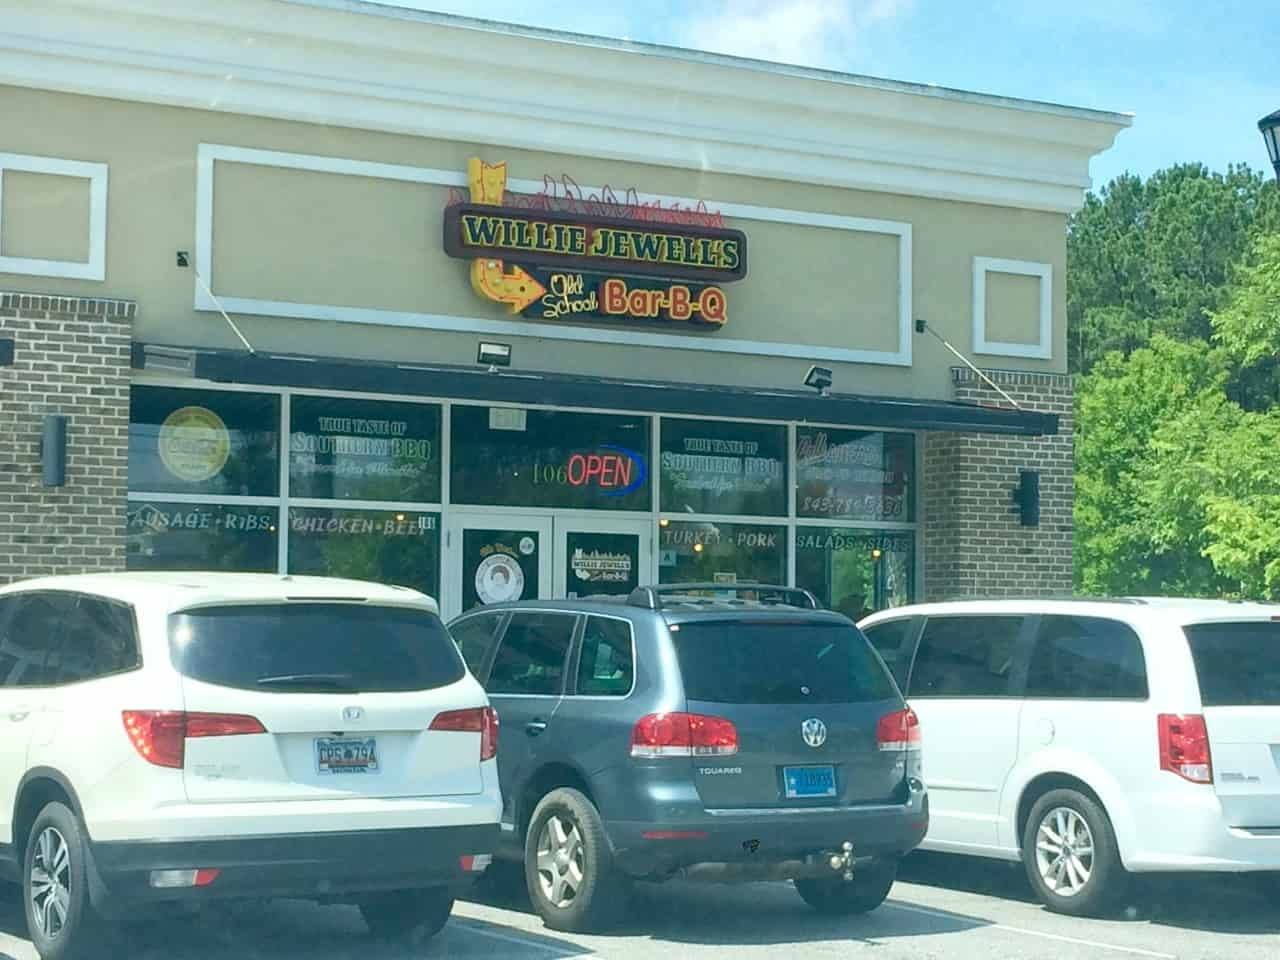 Willie Jewell's in North Charleston - Storefront